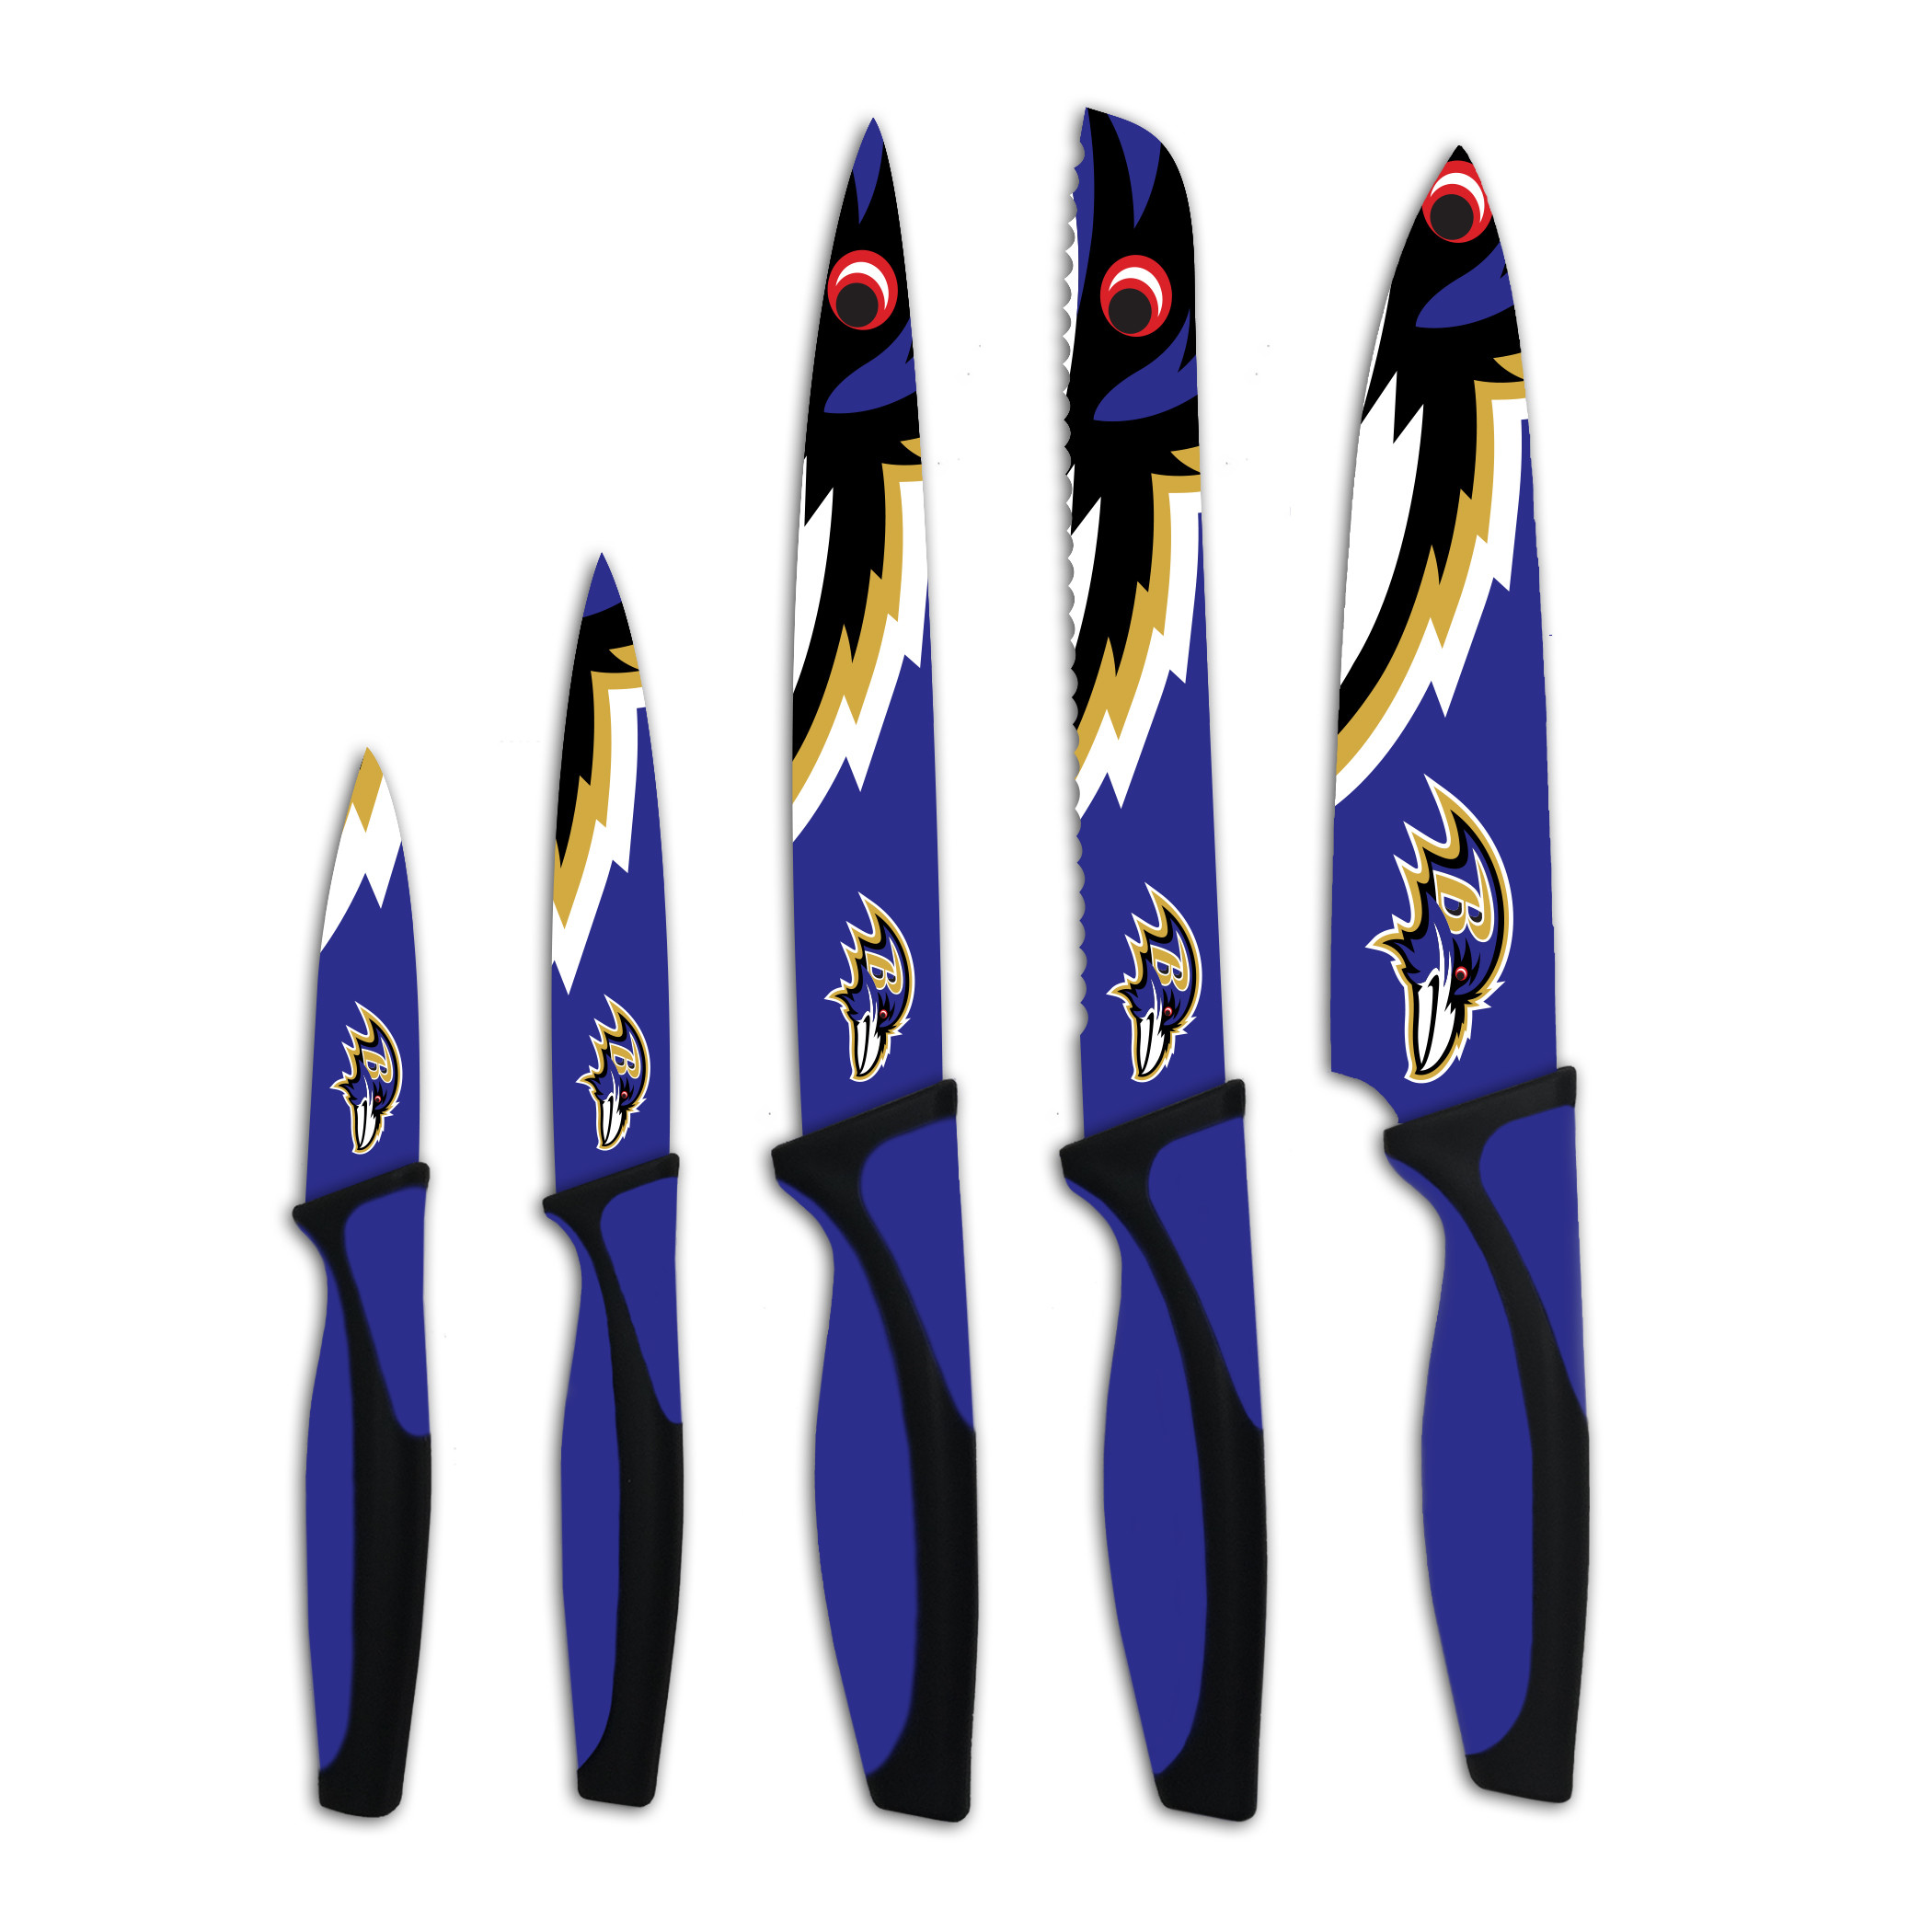 Baltimore Ravens 5 Piece Kitchen Knives Set